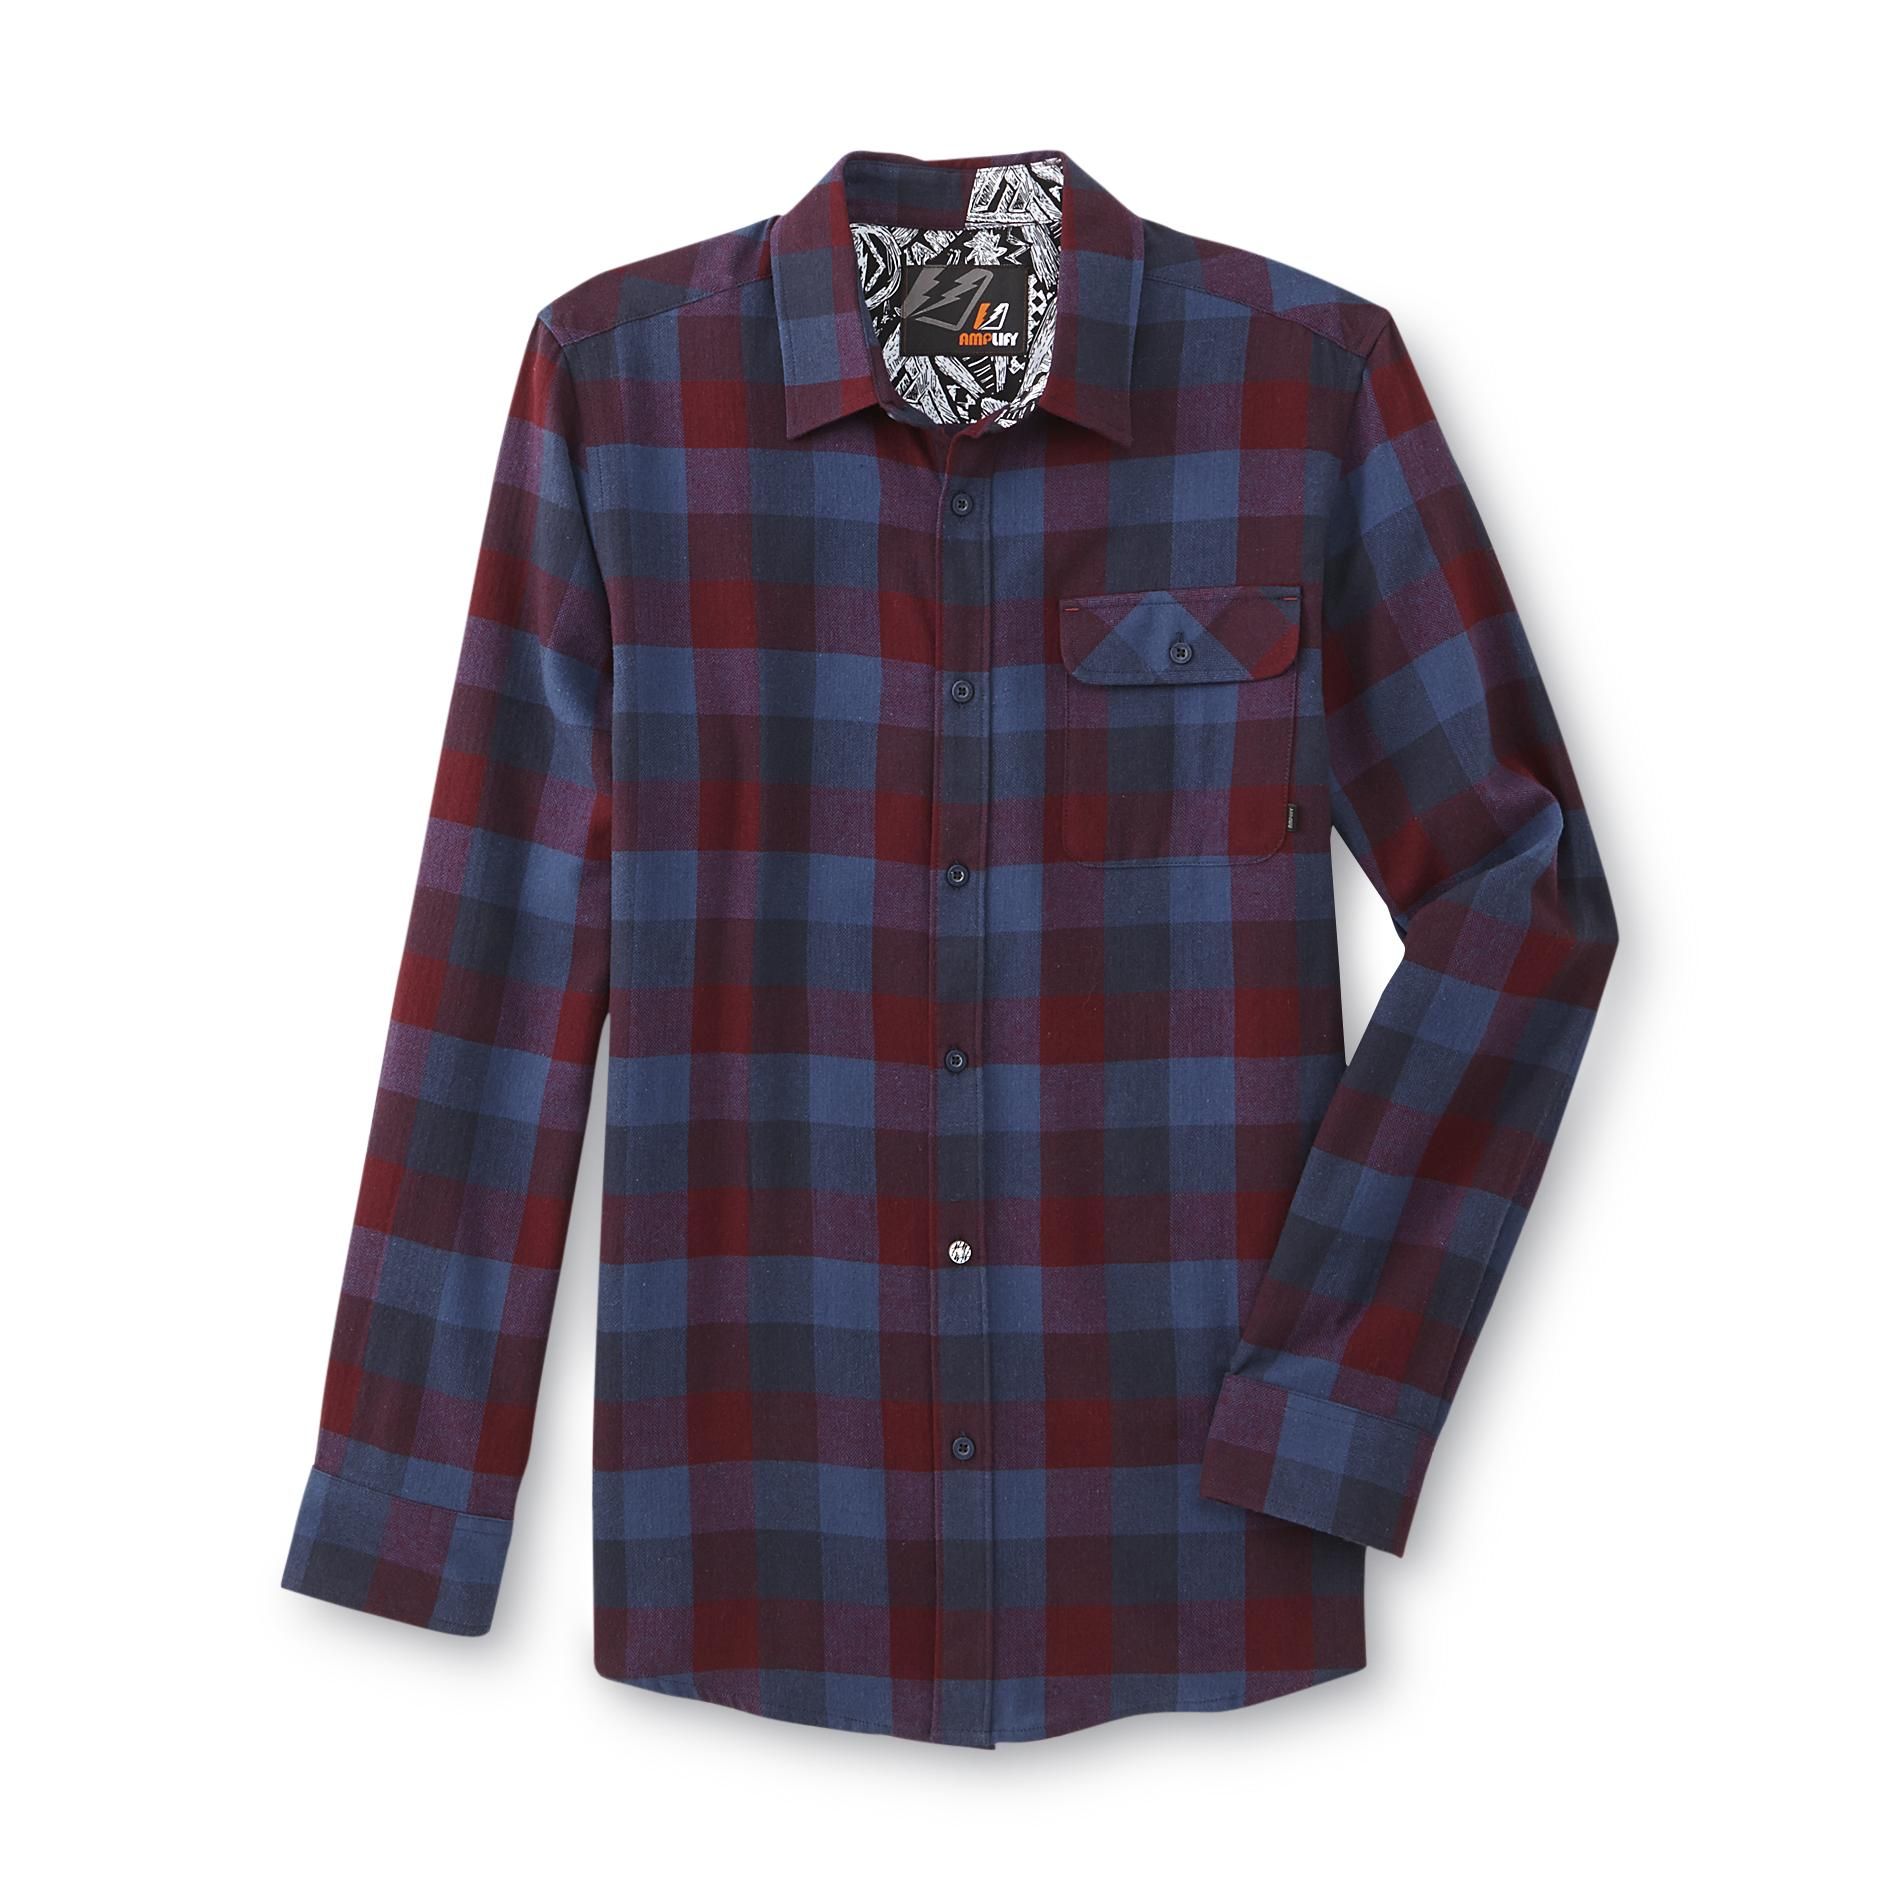 Amplify Young Men's Flannel Shirt - Plaid